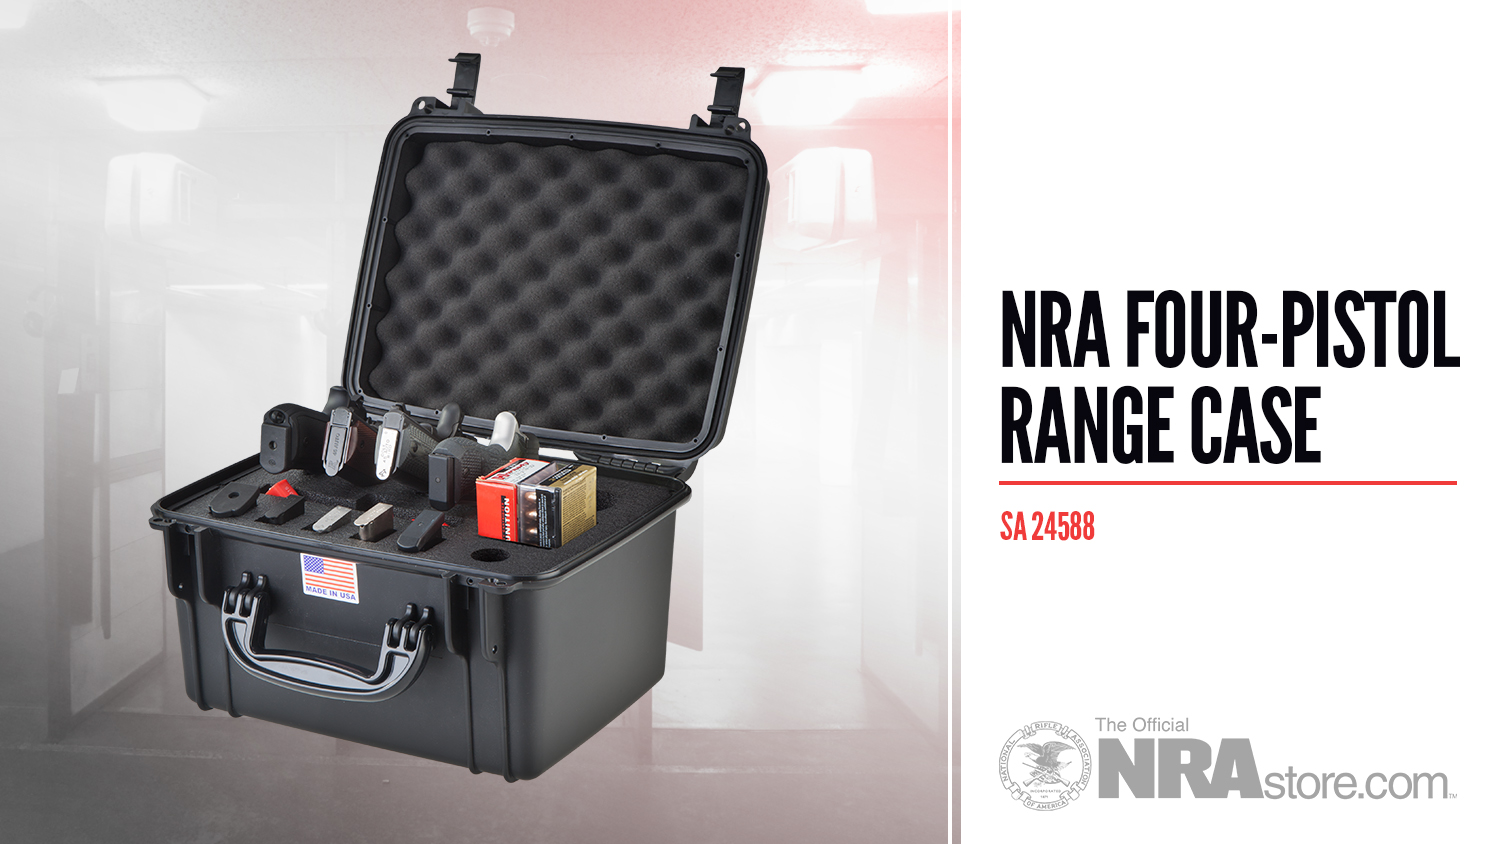 NRAstore Product Highlight: Four-Pistol Range Case